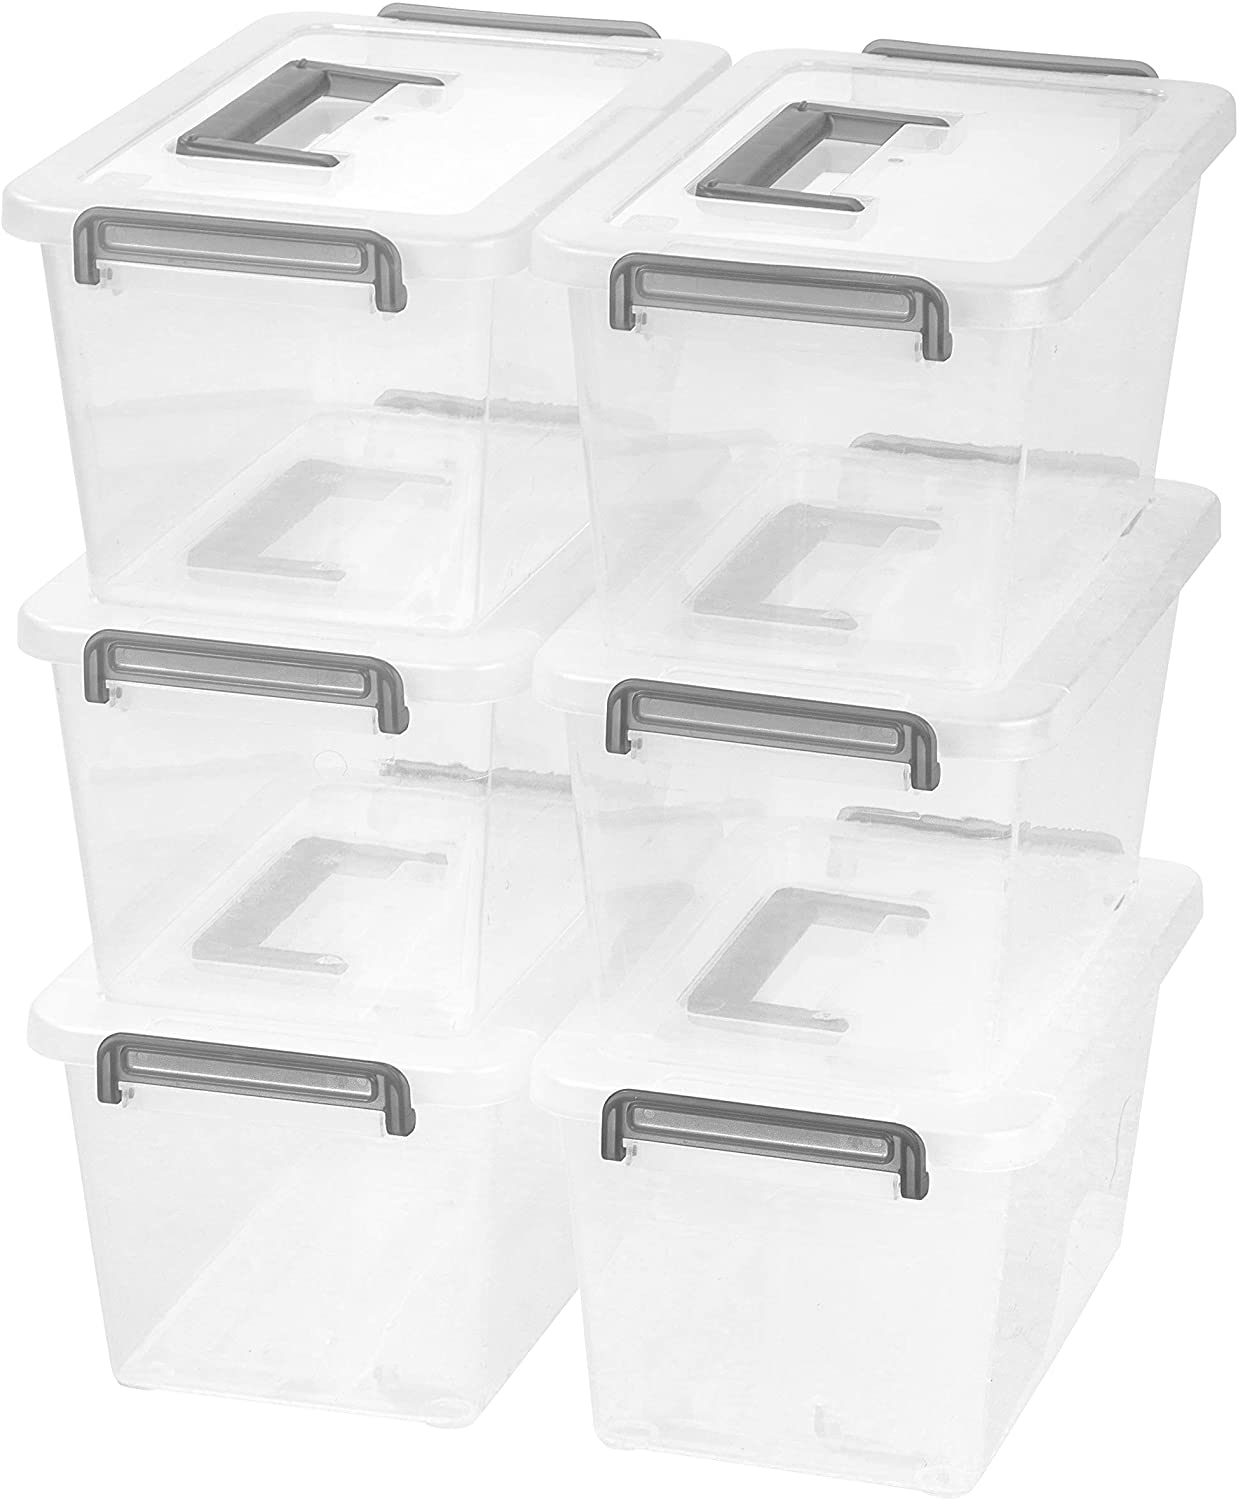 IRIS USA Medium Deep Modular Latching Box - Silver Handle, 6 Pack